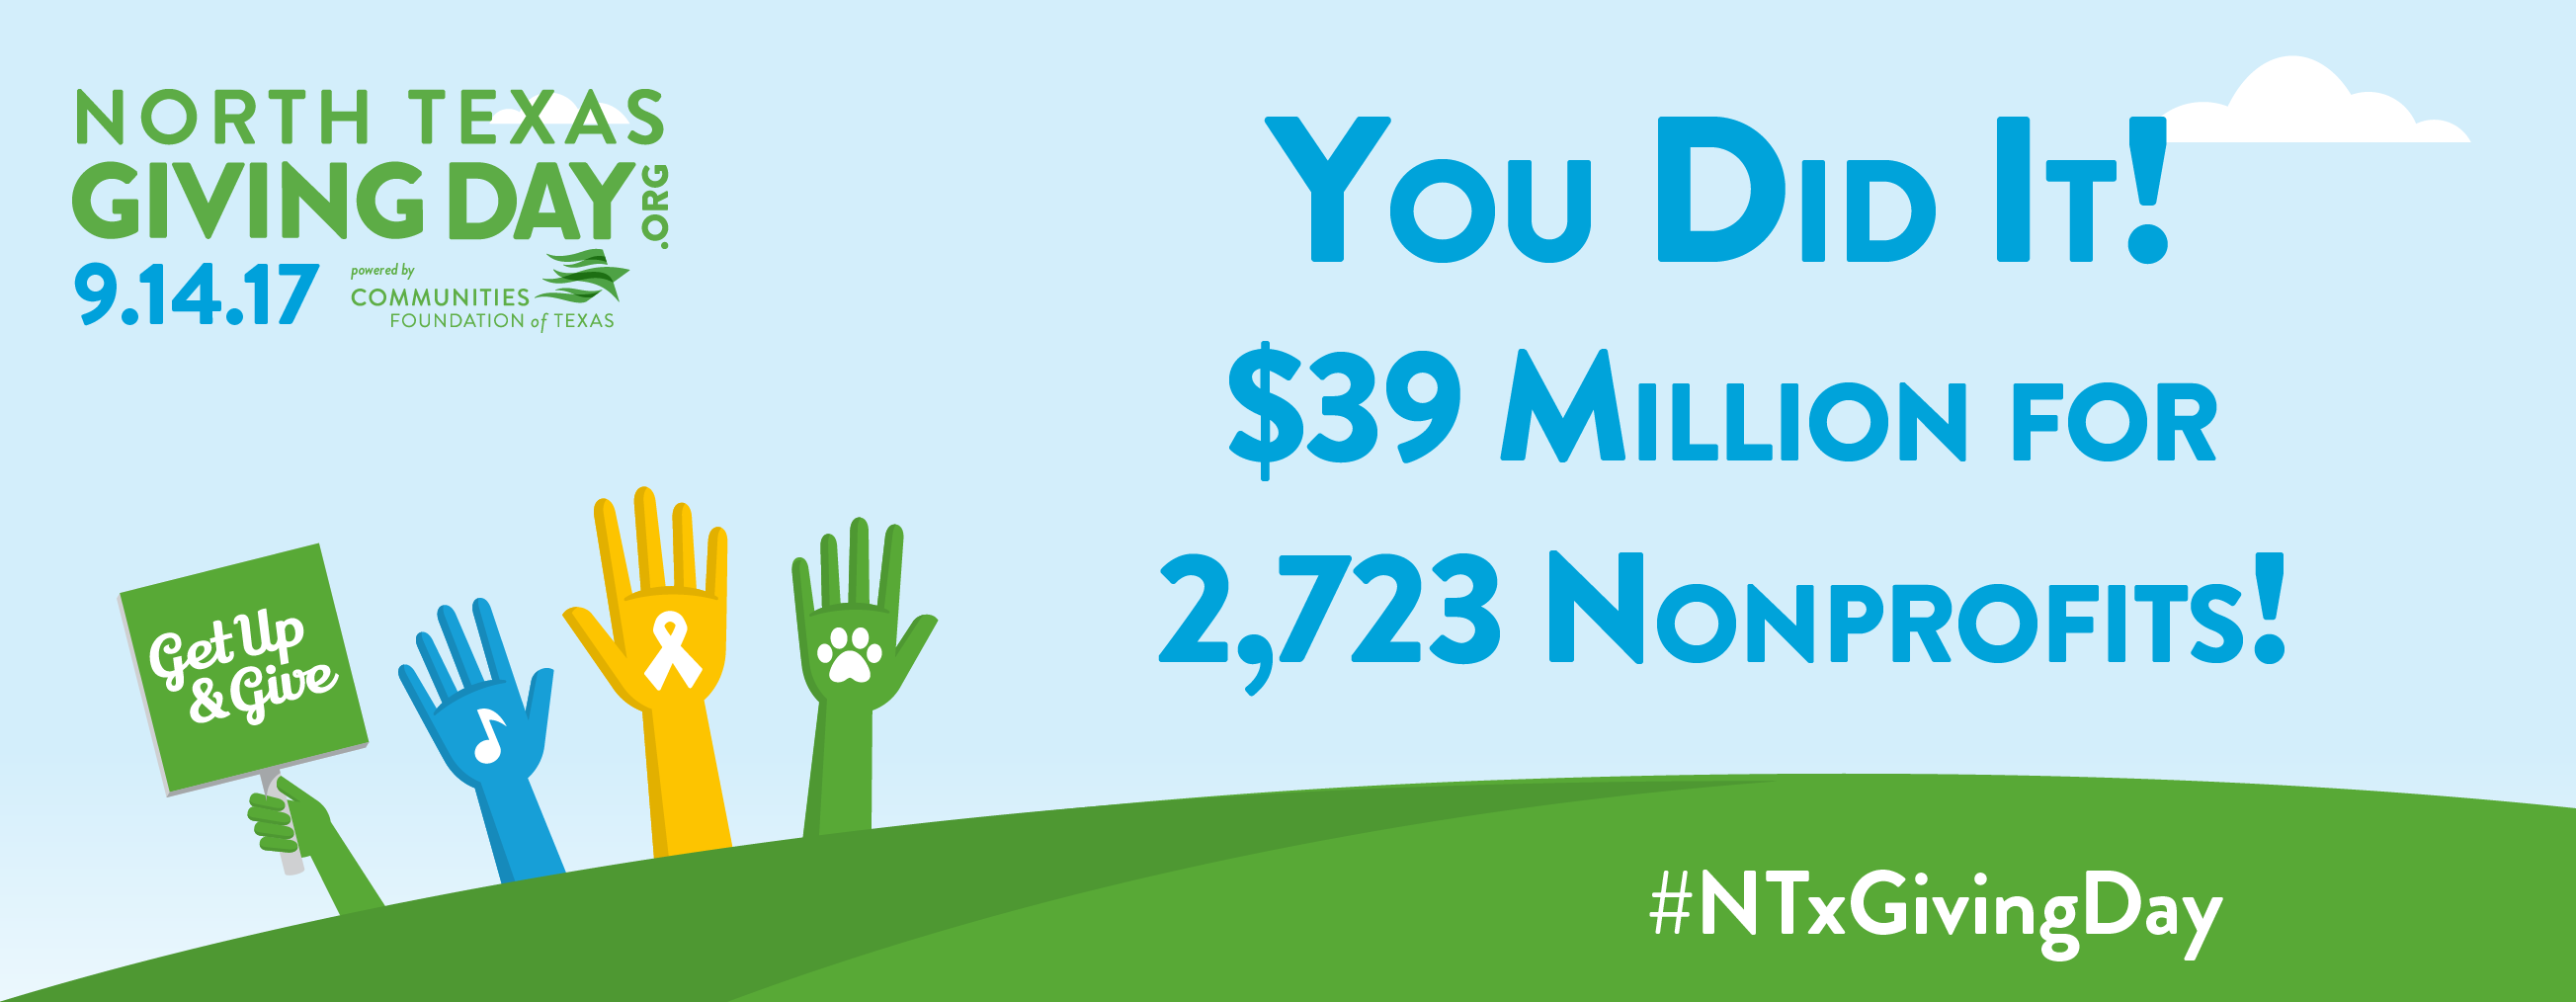 Raising $25,000 on North Texas Giving Day